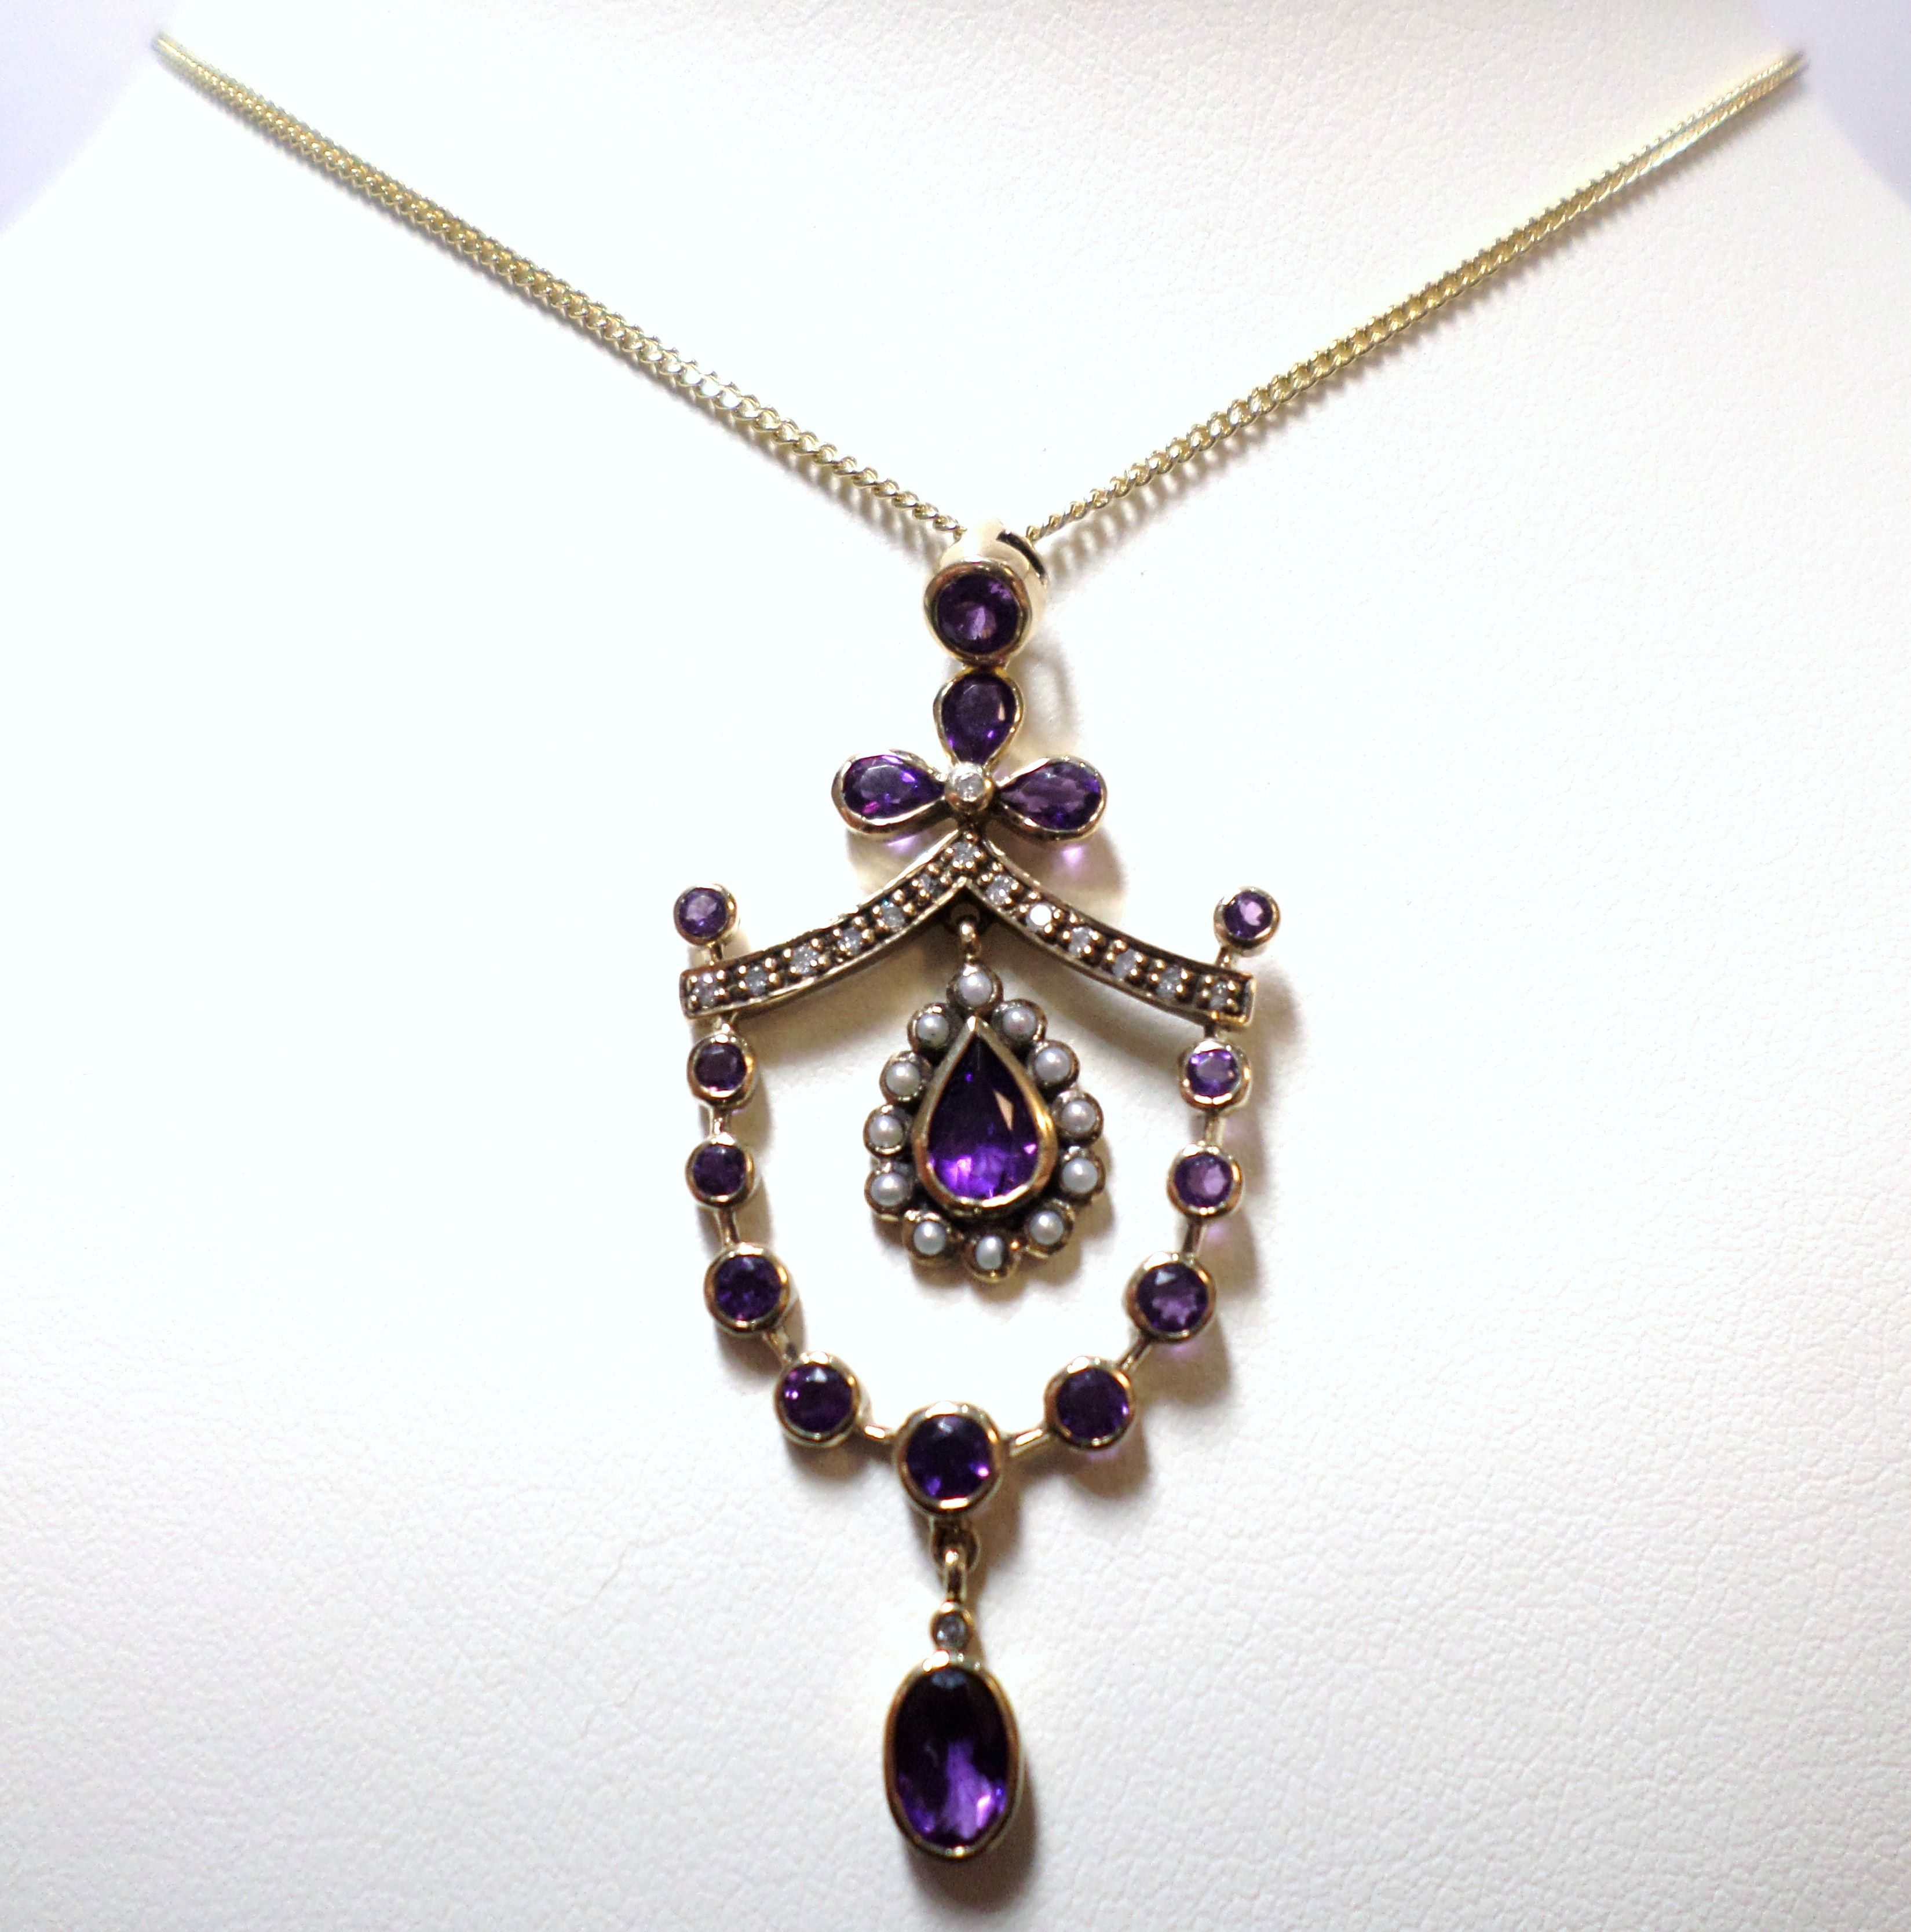 Jewellery 9ct Yellow Gold Amethyst and Cultured Freshwater Seed Pearl Pendant Vintage Antique Reproduction £395.00 Contact us at www.facebook.com/ellisondavisjewellery for more information